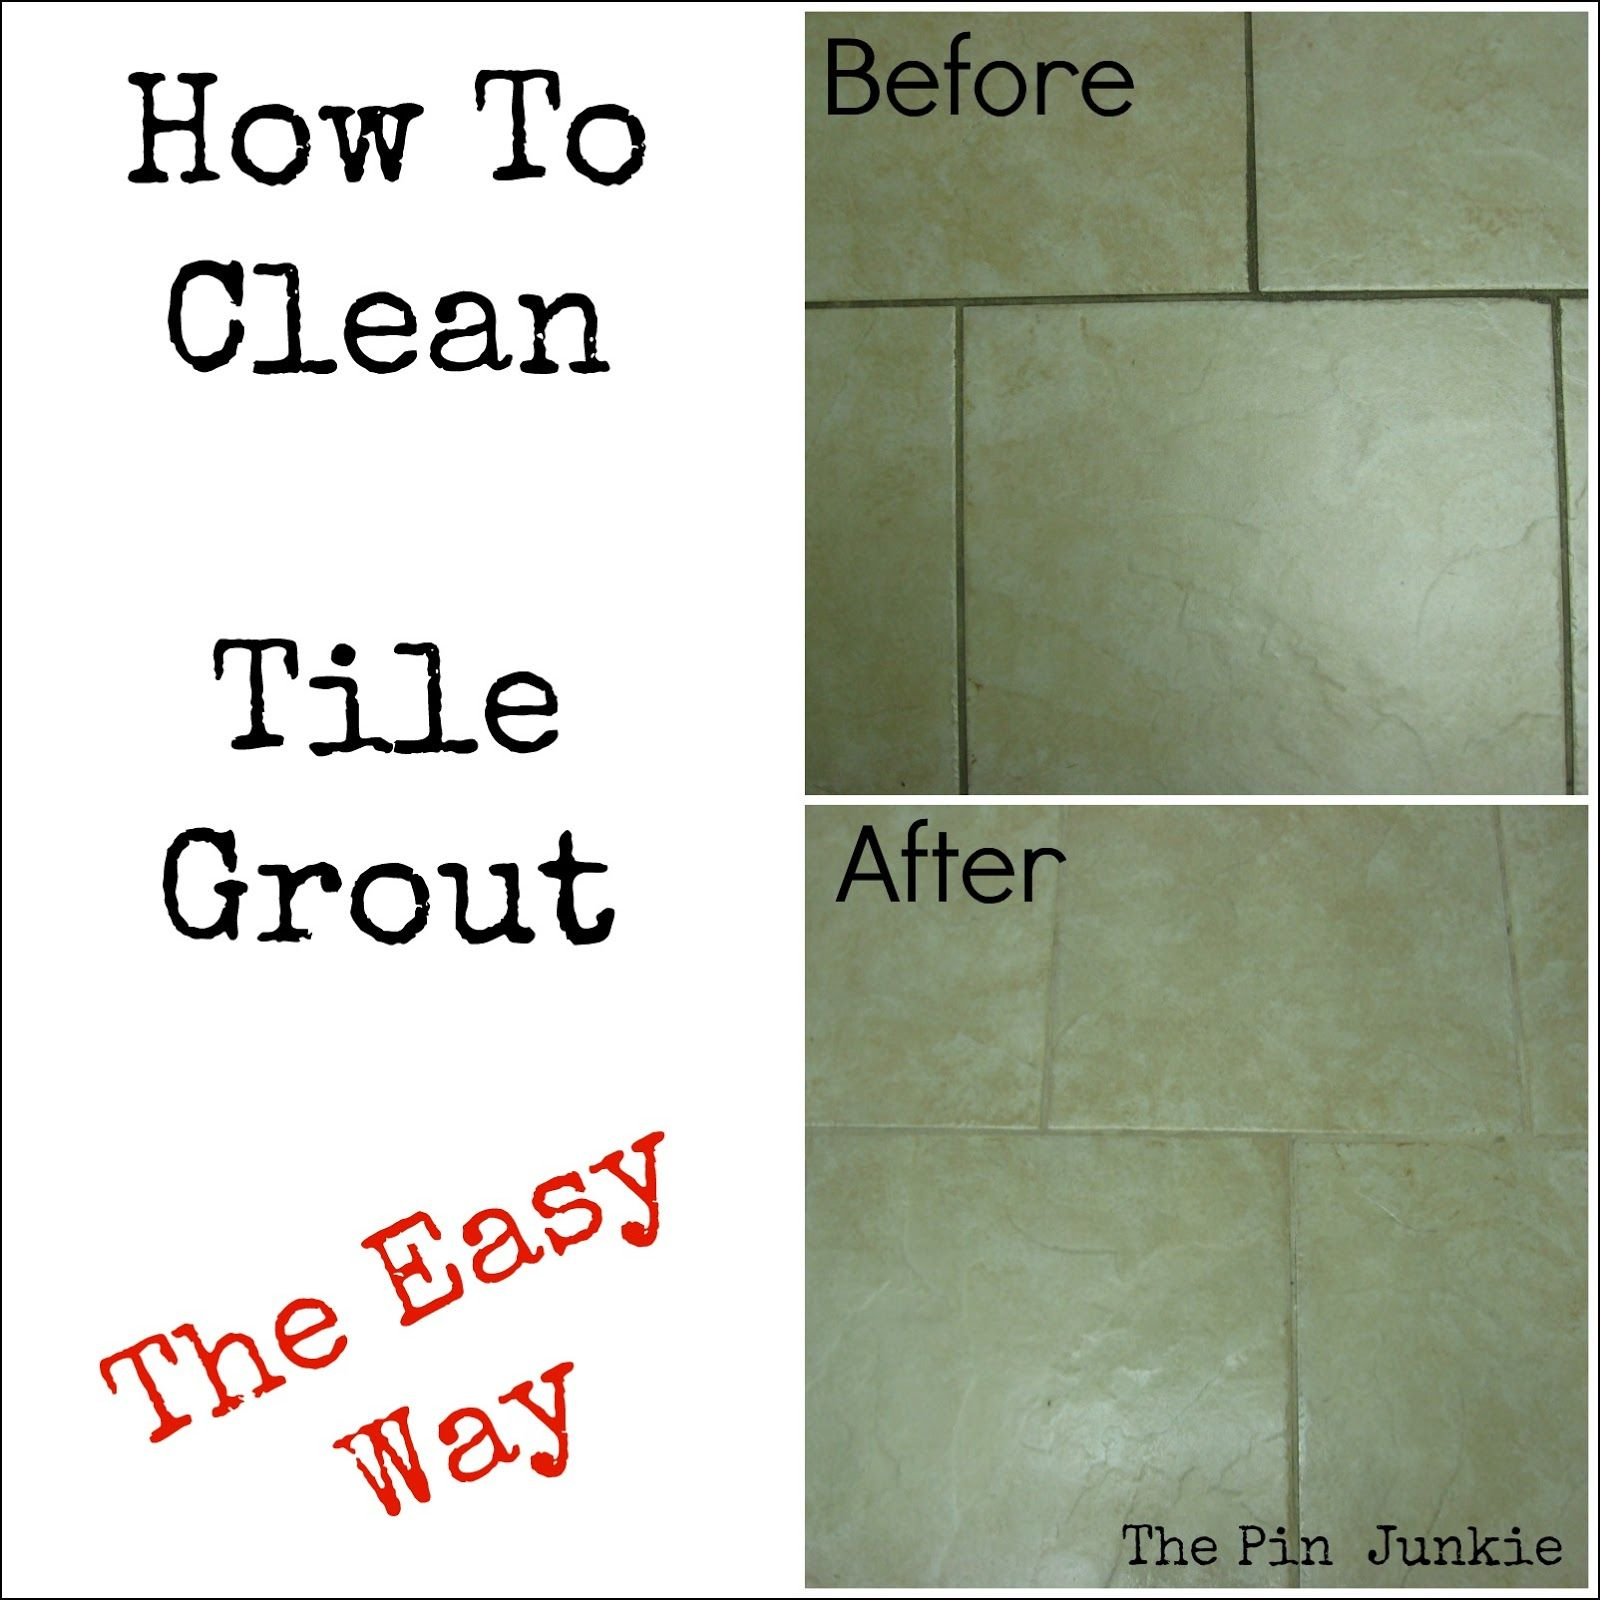 How To Clean Tile Grout Clean Tile Grout Clean Bathtub